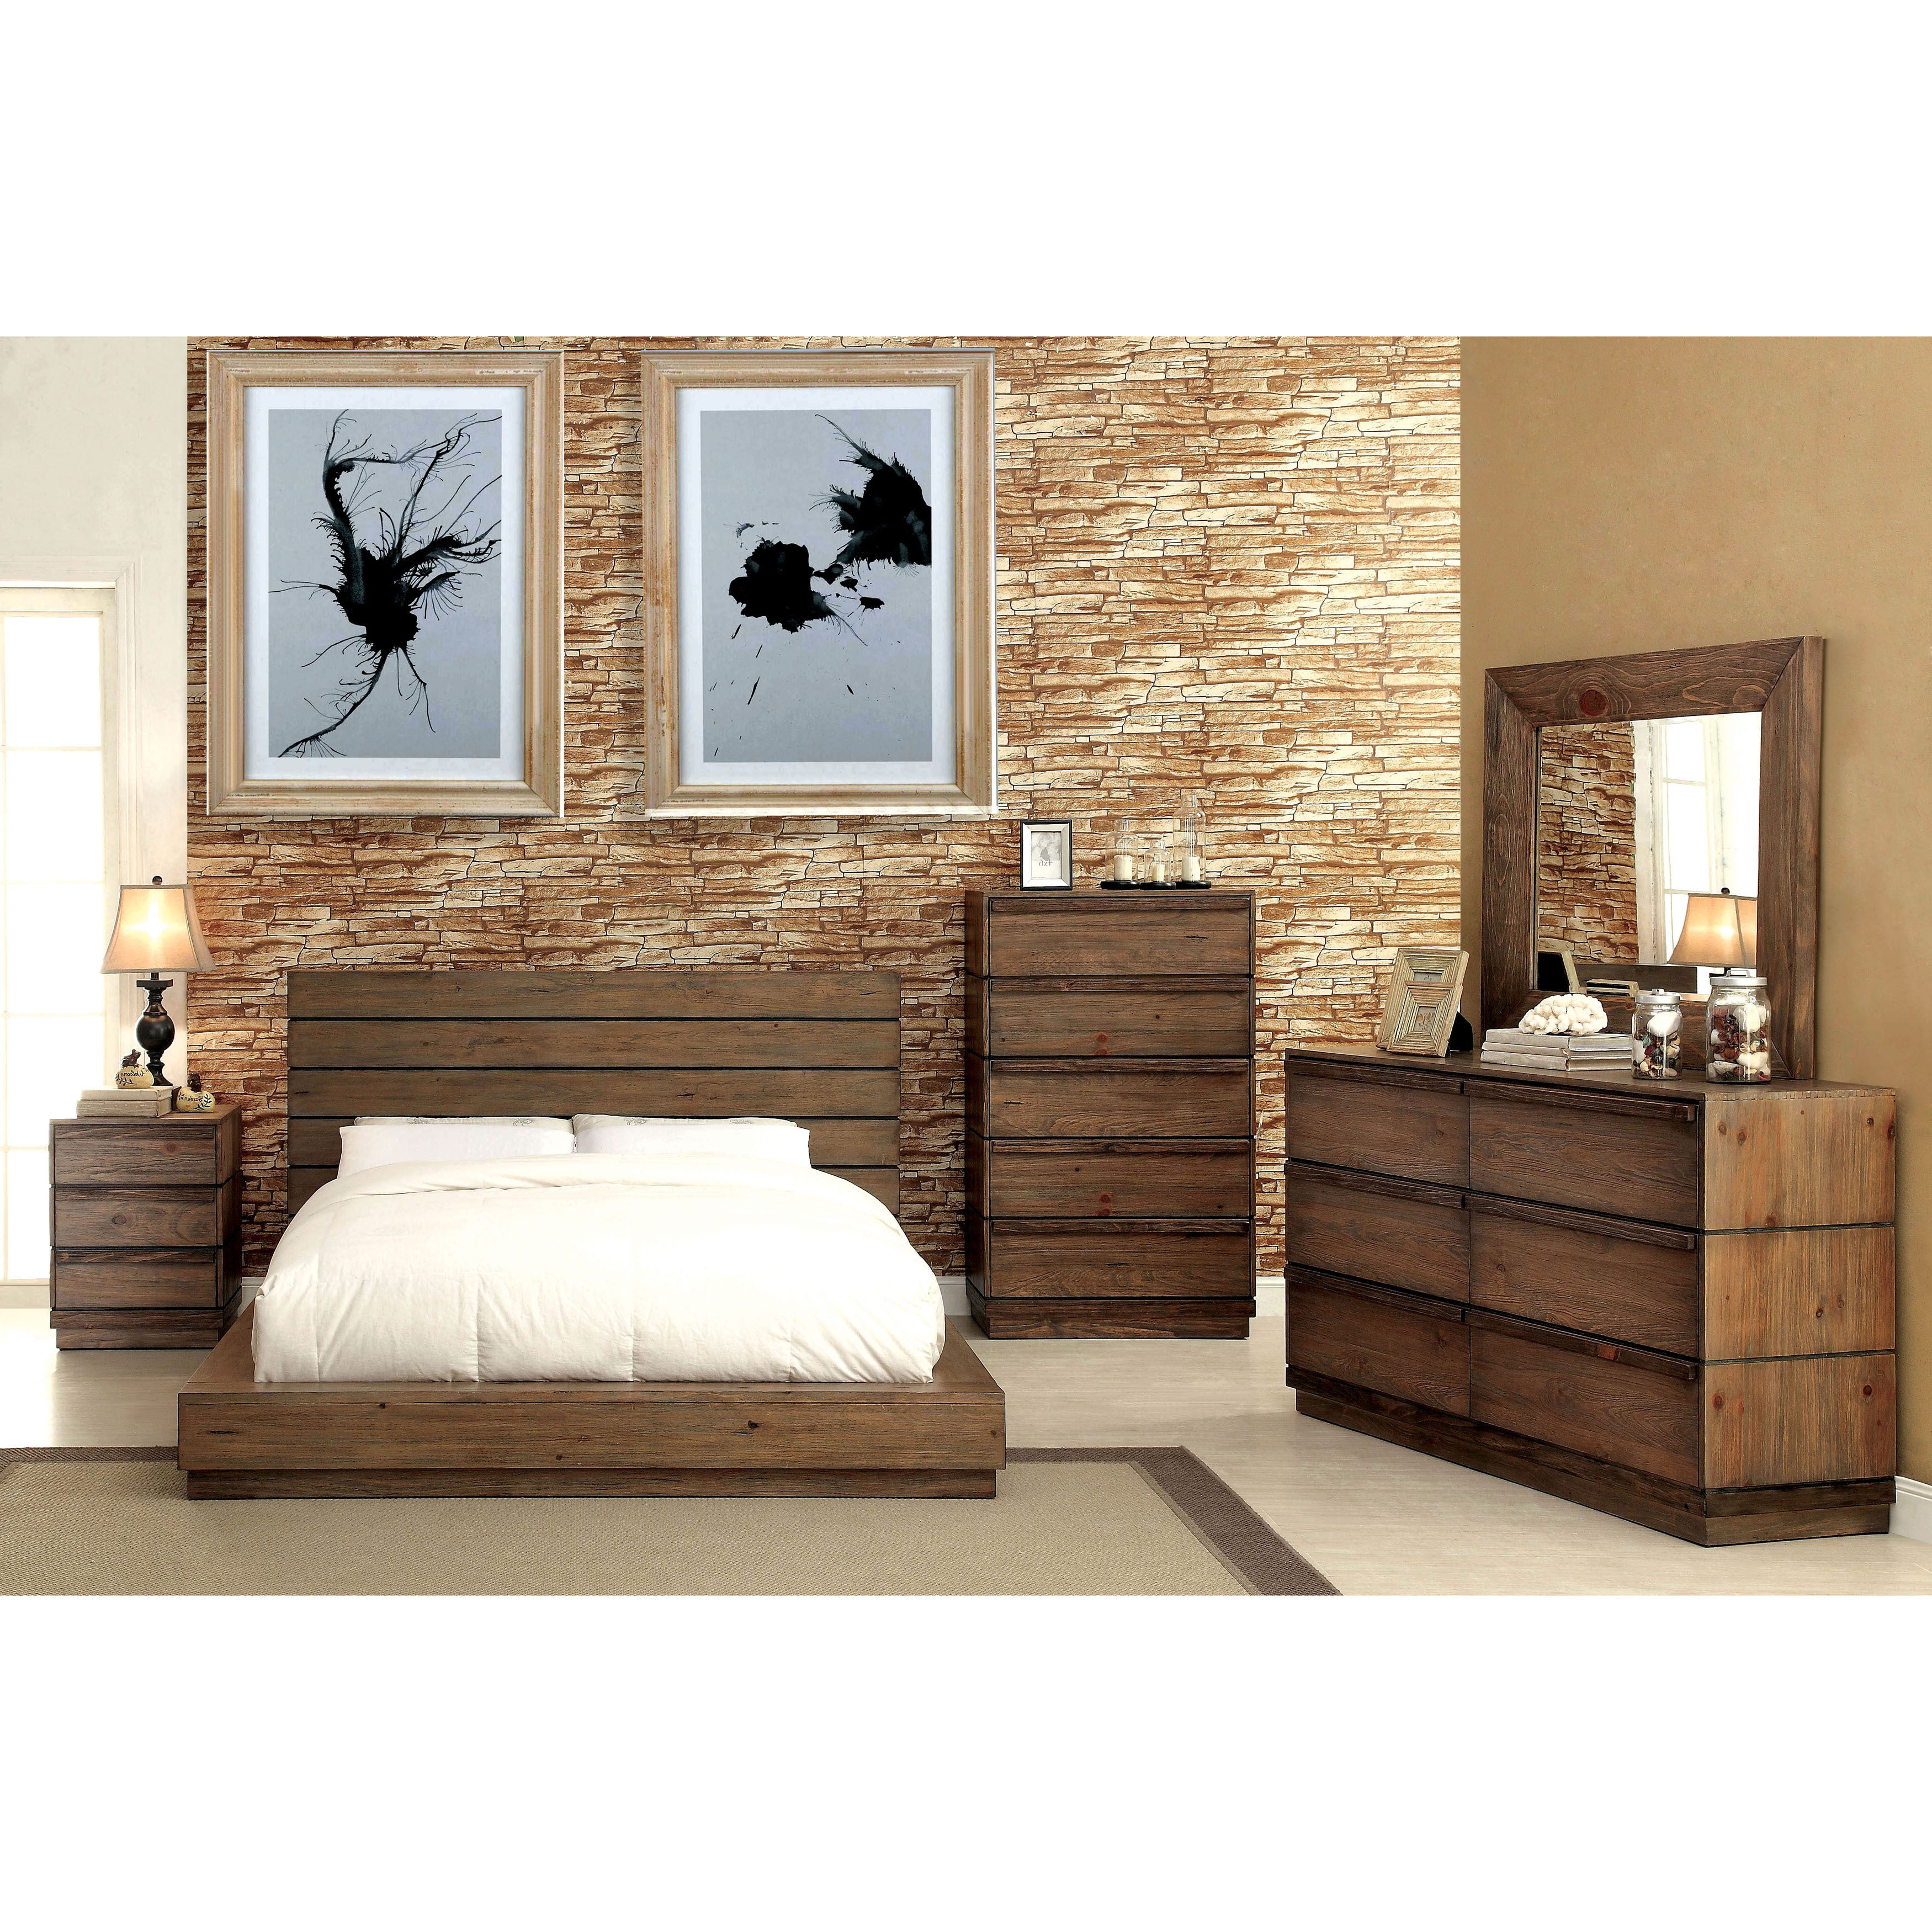 Beau Furniture Of America Emallson Rustic 4 Piece Natural Tone Low Profile  Bedroom Set